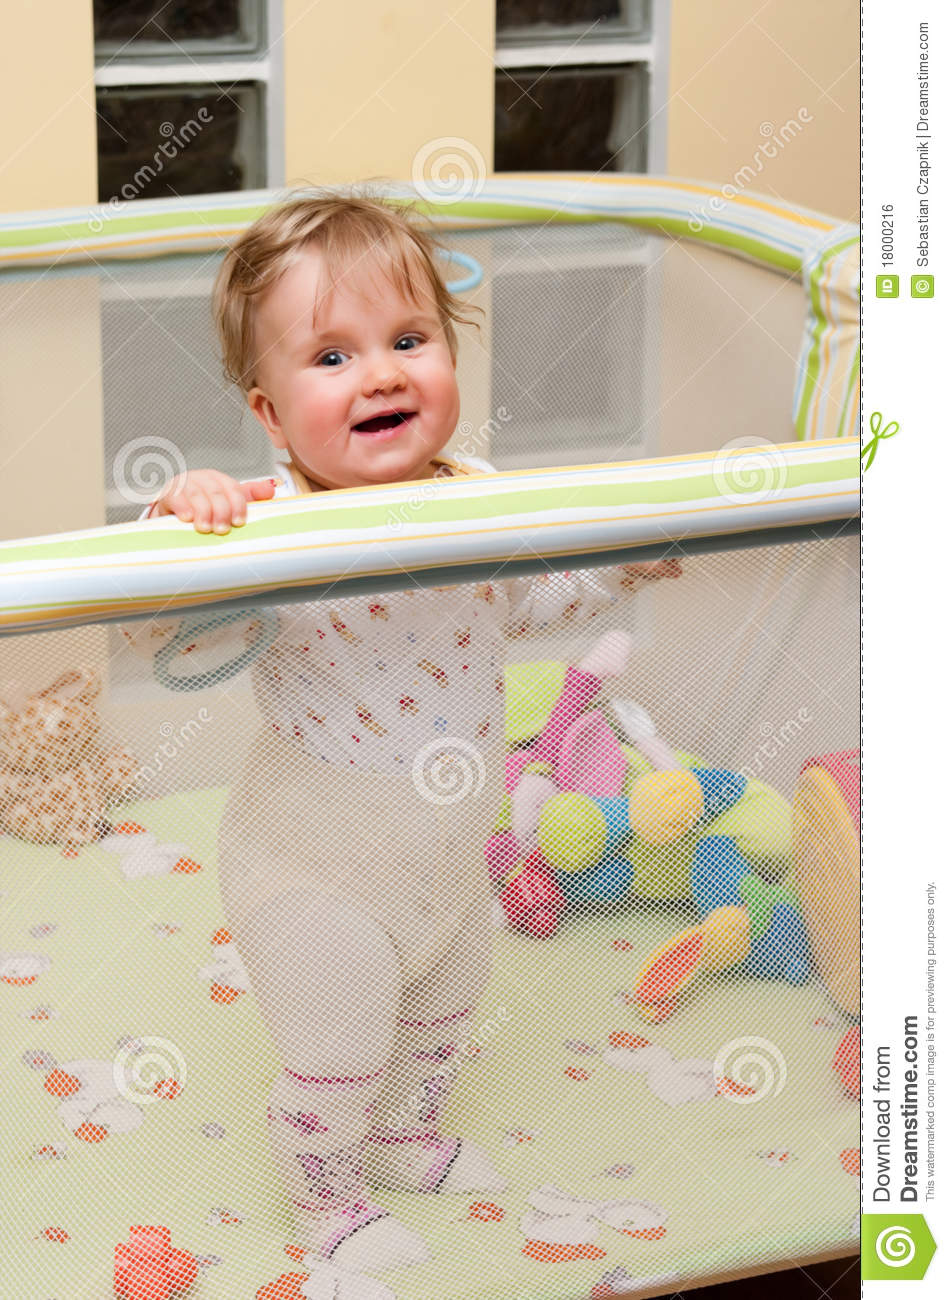 Baby Girl In Playpen Royalty Free Stock Image  Image